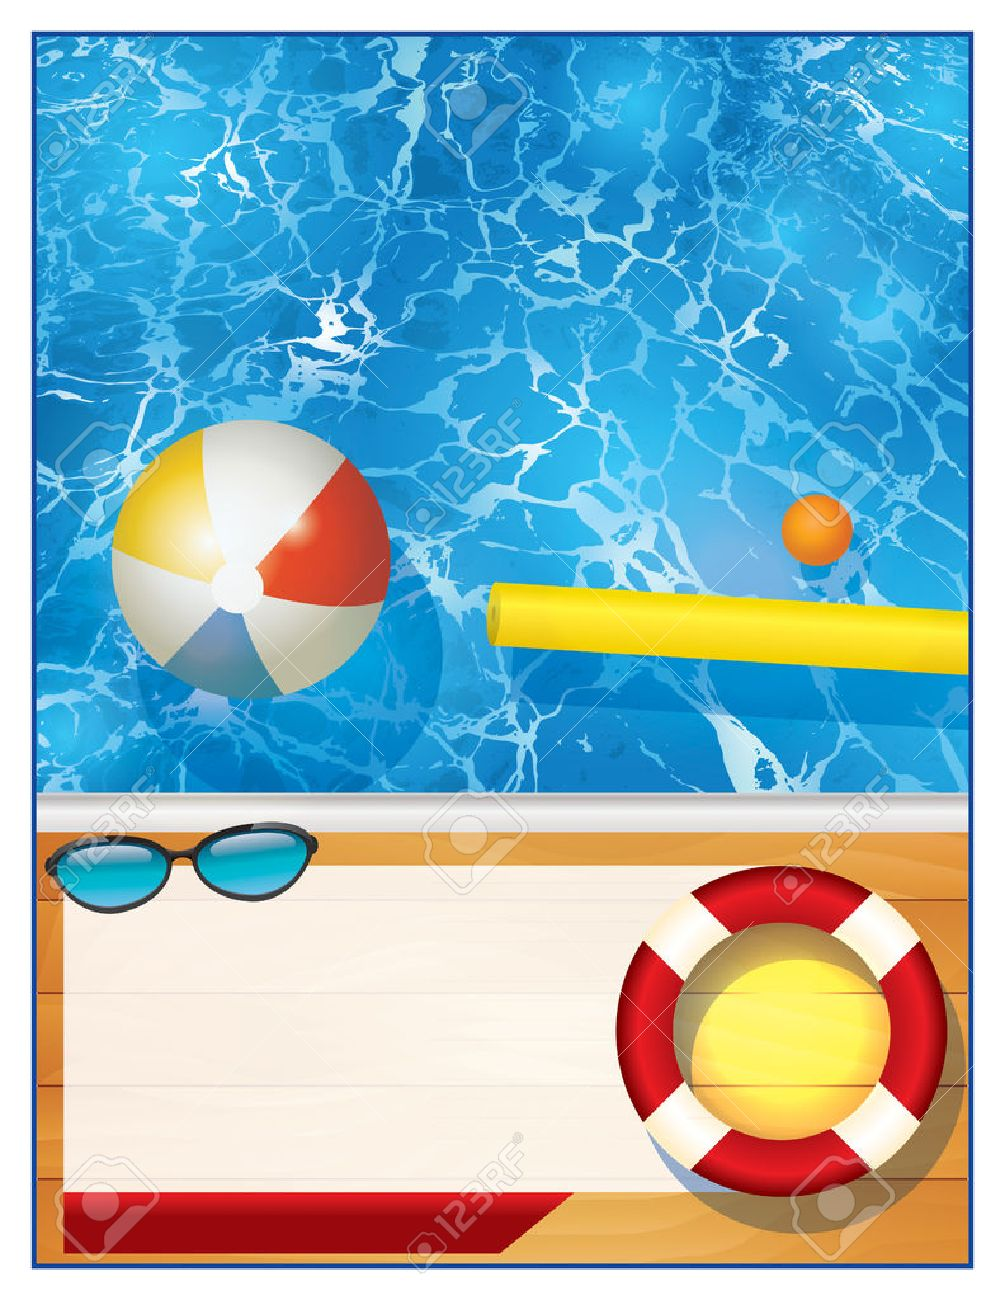 A blank swimming pool background with room for copy for a party a blank swimming pool background with room for copy for a party invitation or special event stopboris Choice Image